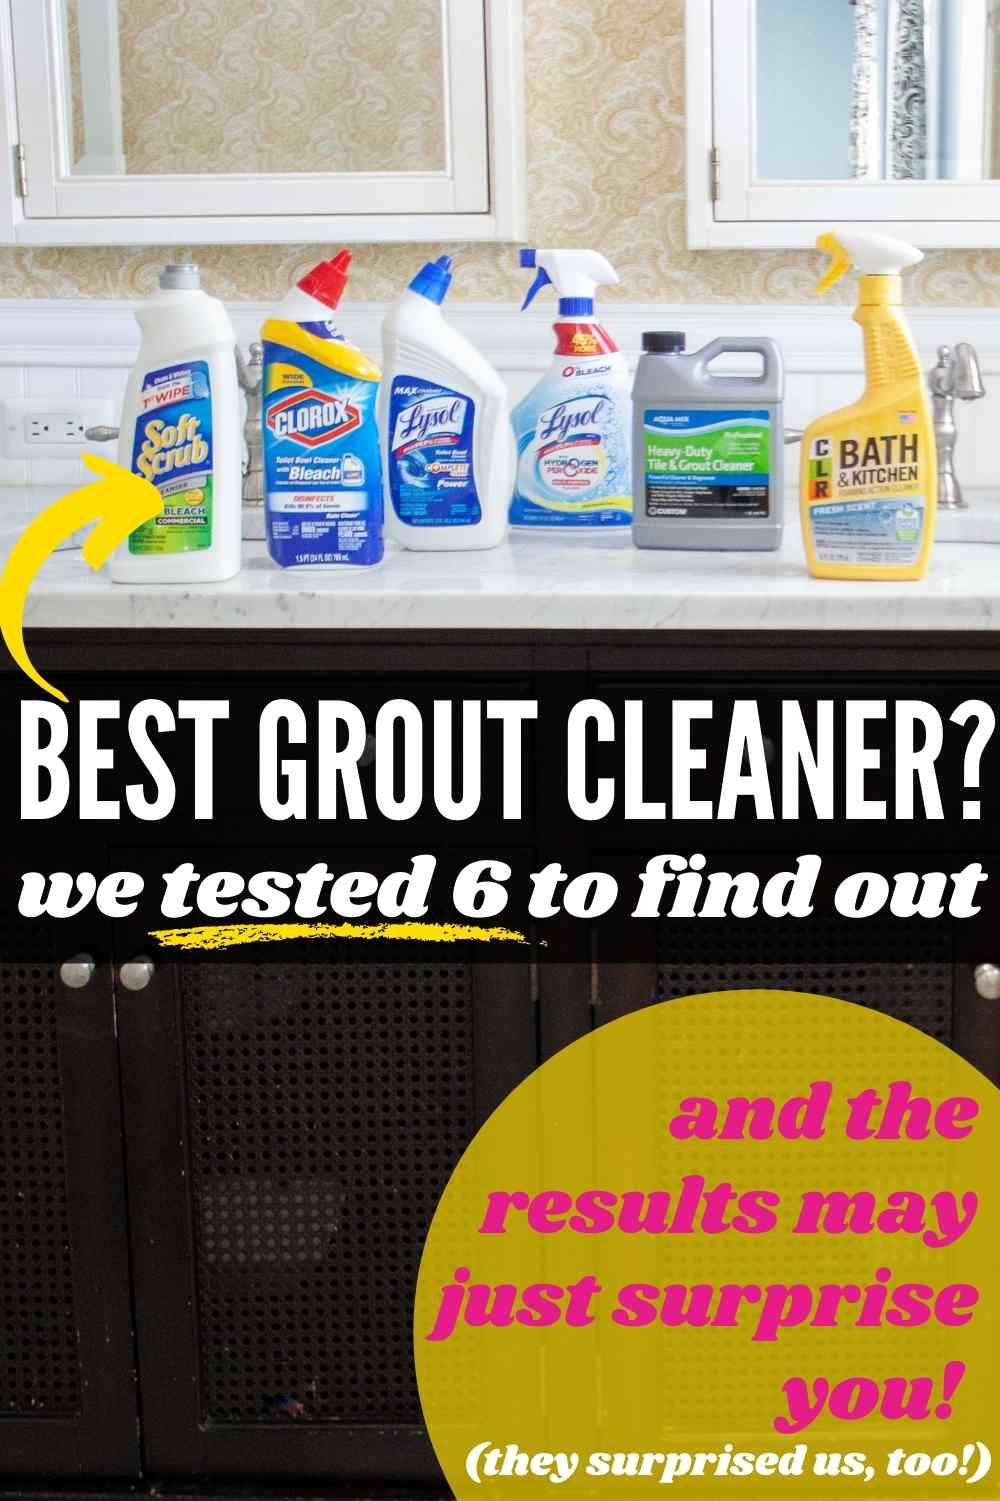 Best Grout Cleaner? We tested 6 to find out (and the results may surprise you!) Image of 6 cleaning products on sink top